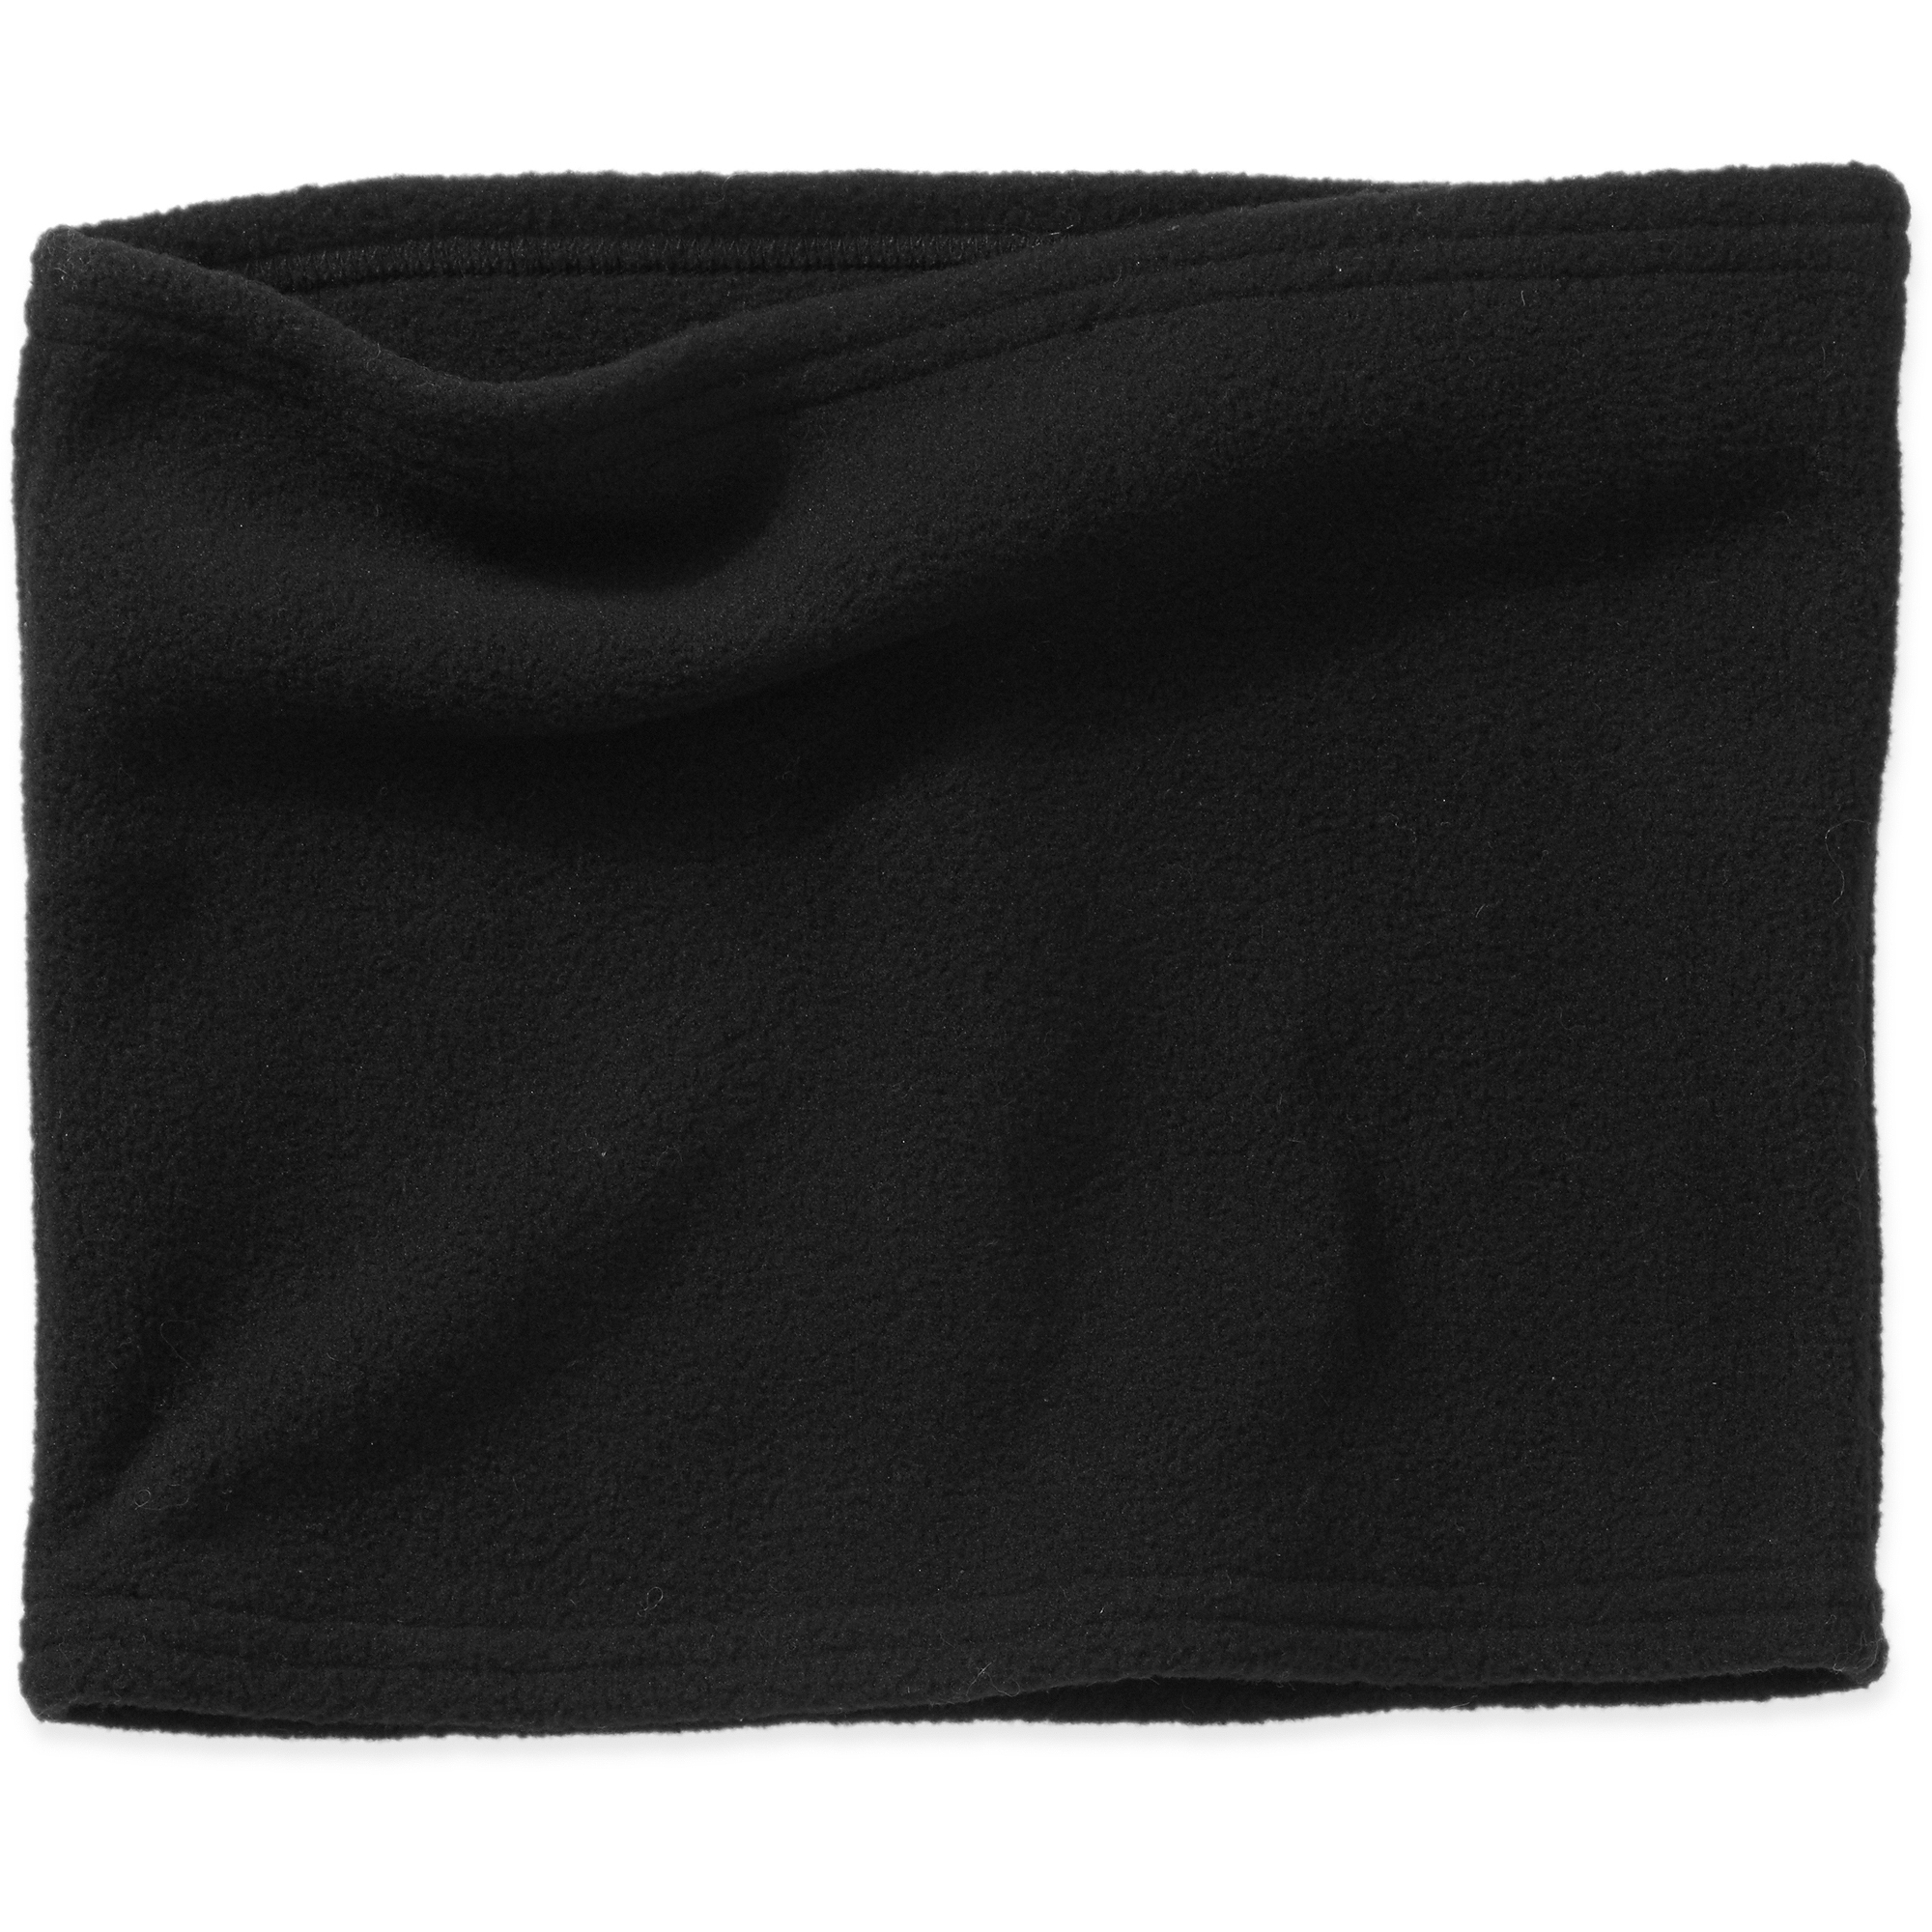 Cold Front Men's Neck Warmer With Dry Moisture Wicking